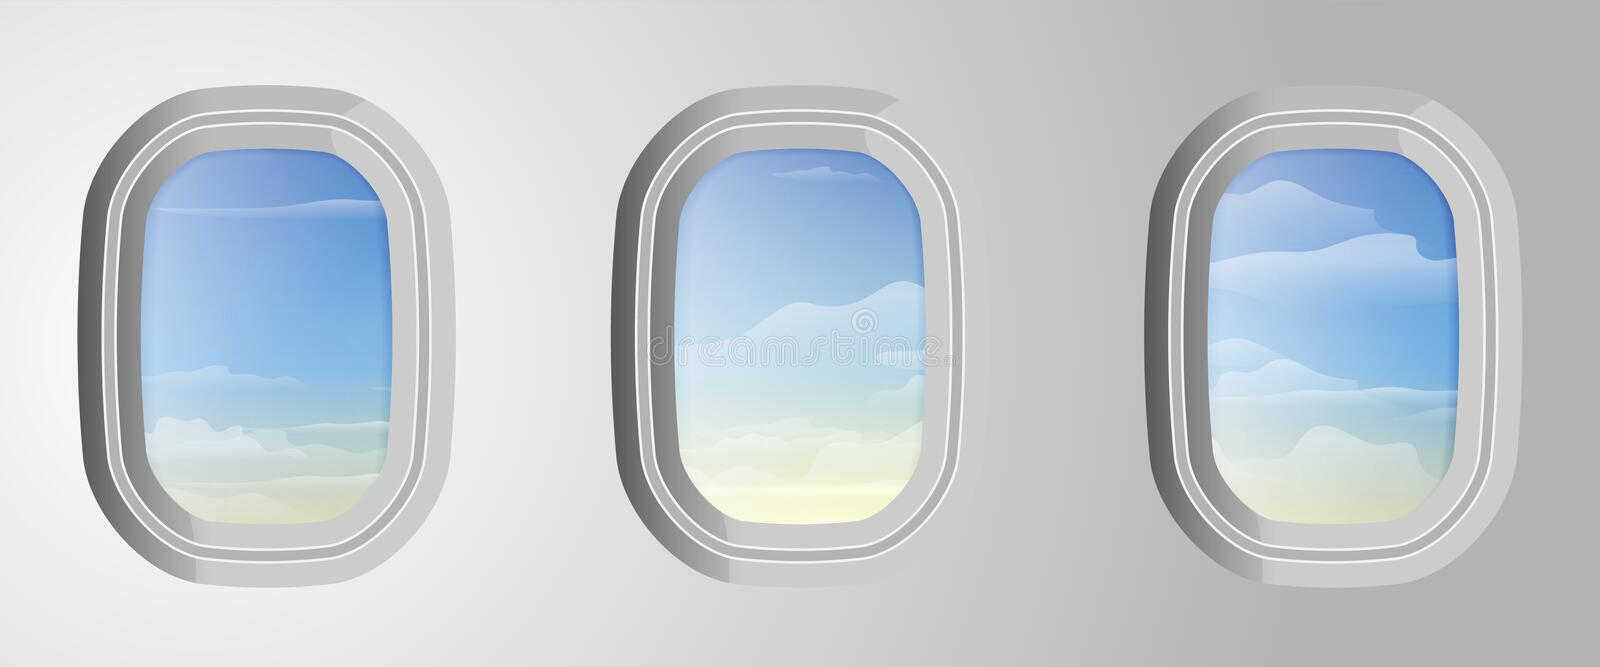 Airplane windows with cloudy blue sky outside. View from airplane. Sky with clouds in aircraft window. Vector illustration stock illustration